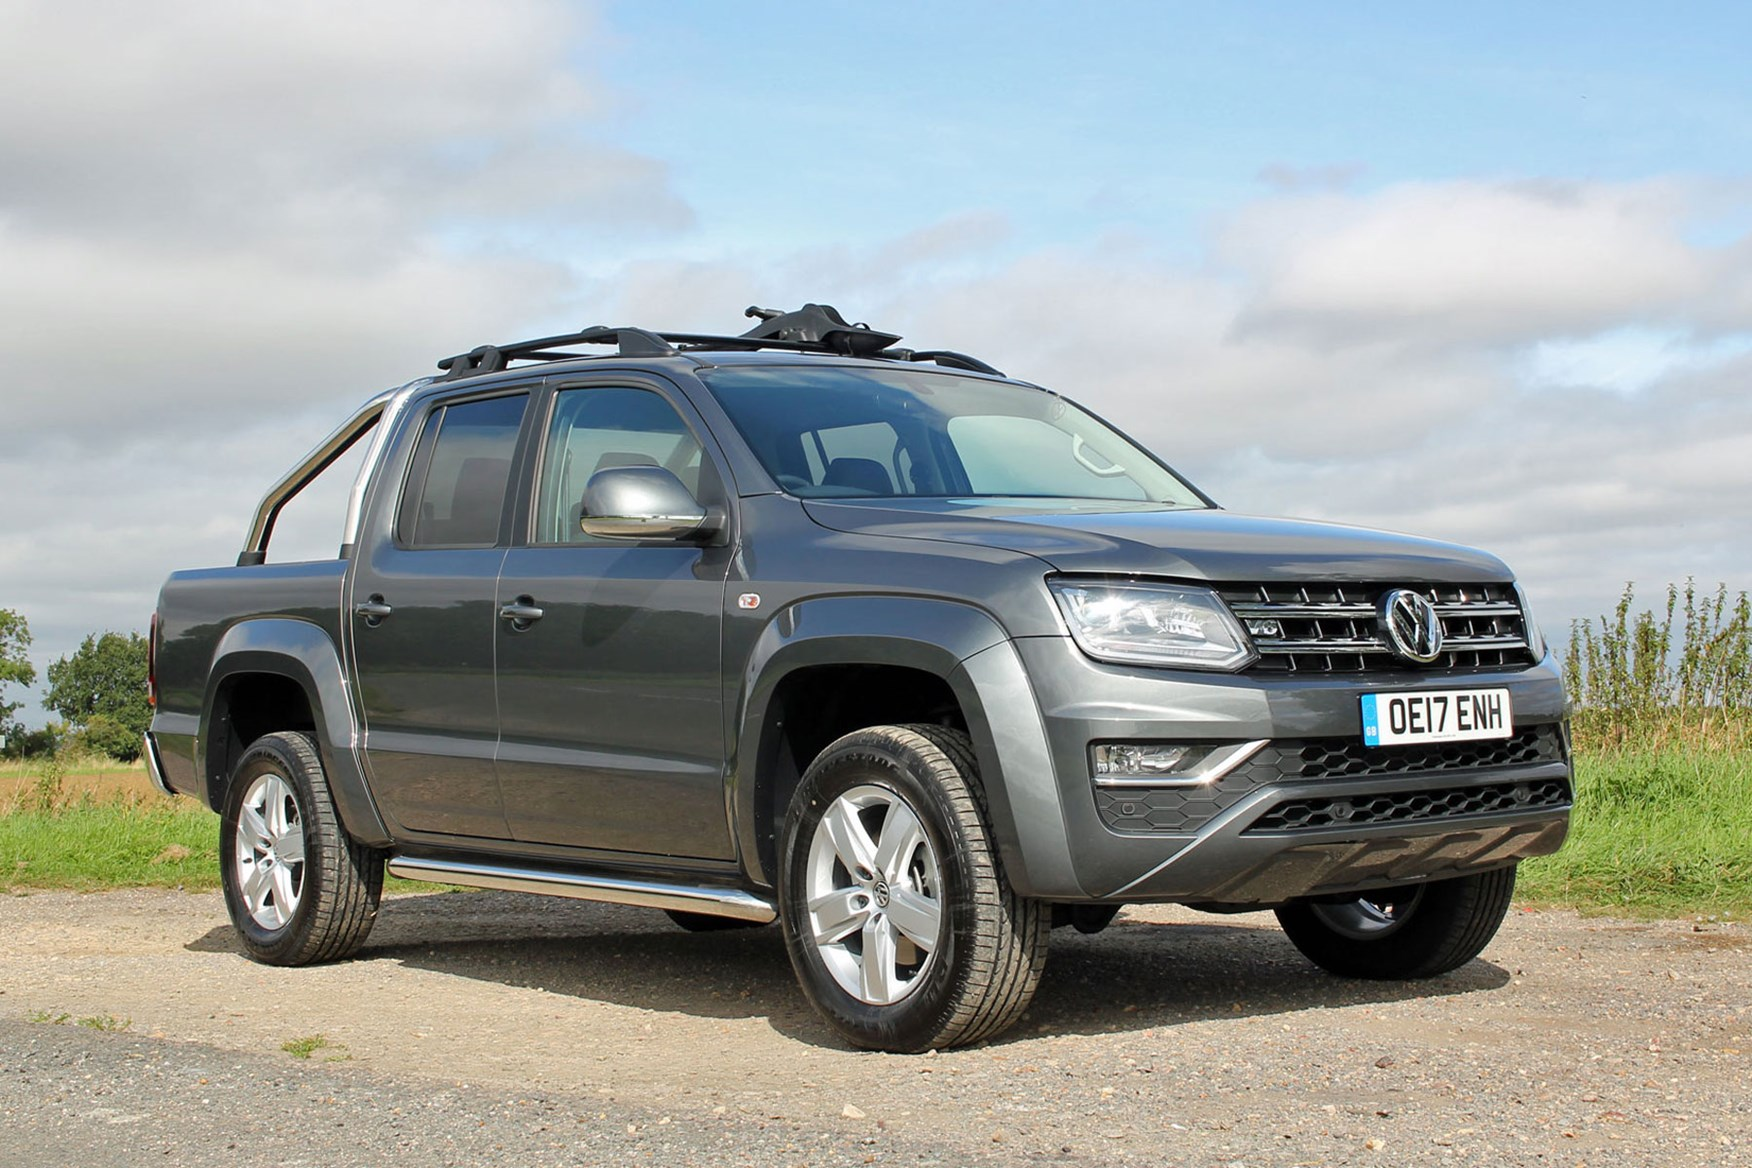 VW Amarok V6 Highline 224hp review - front view, grey